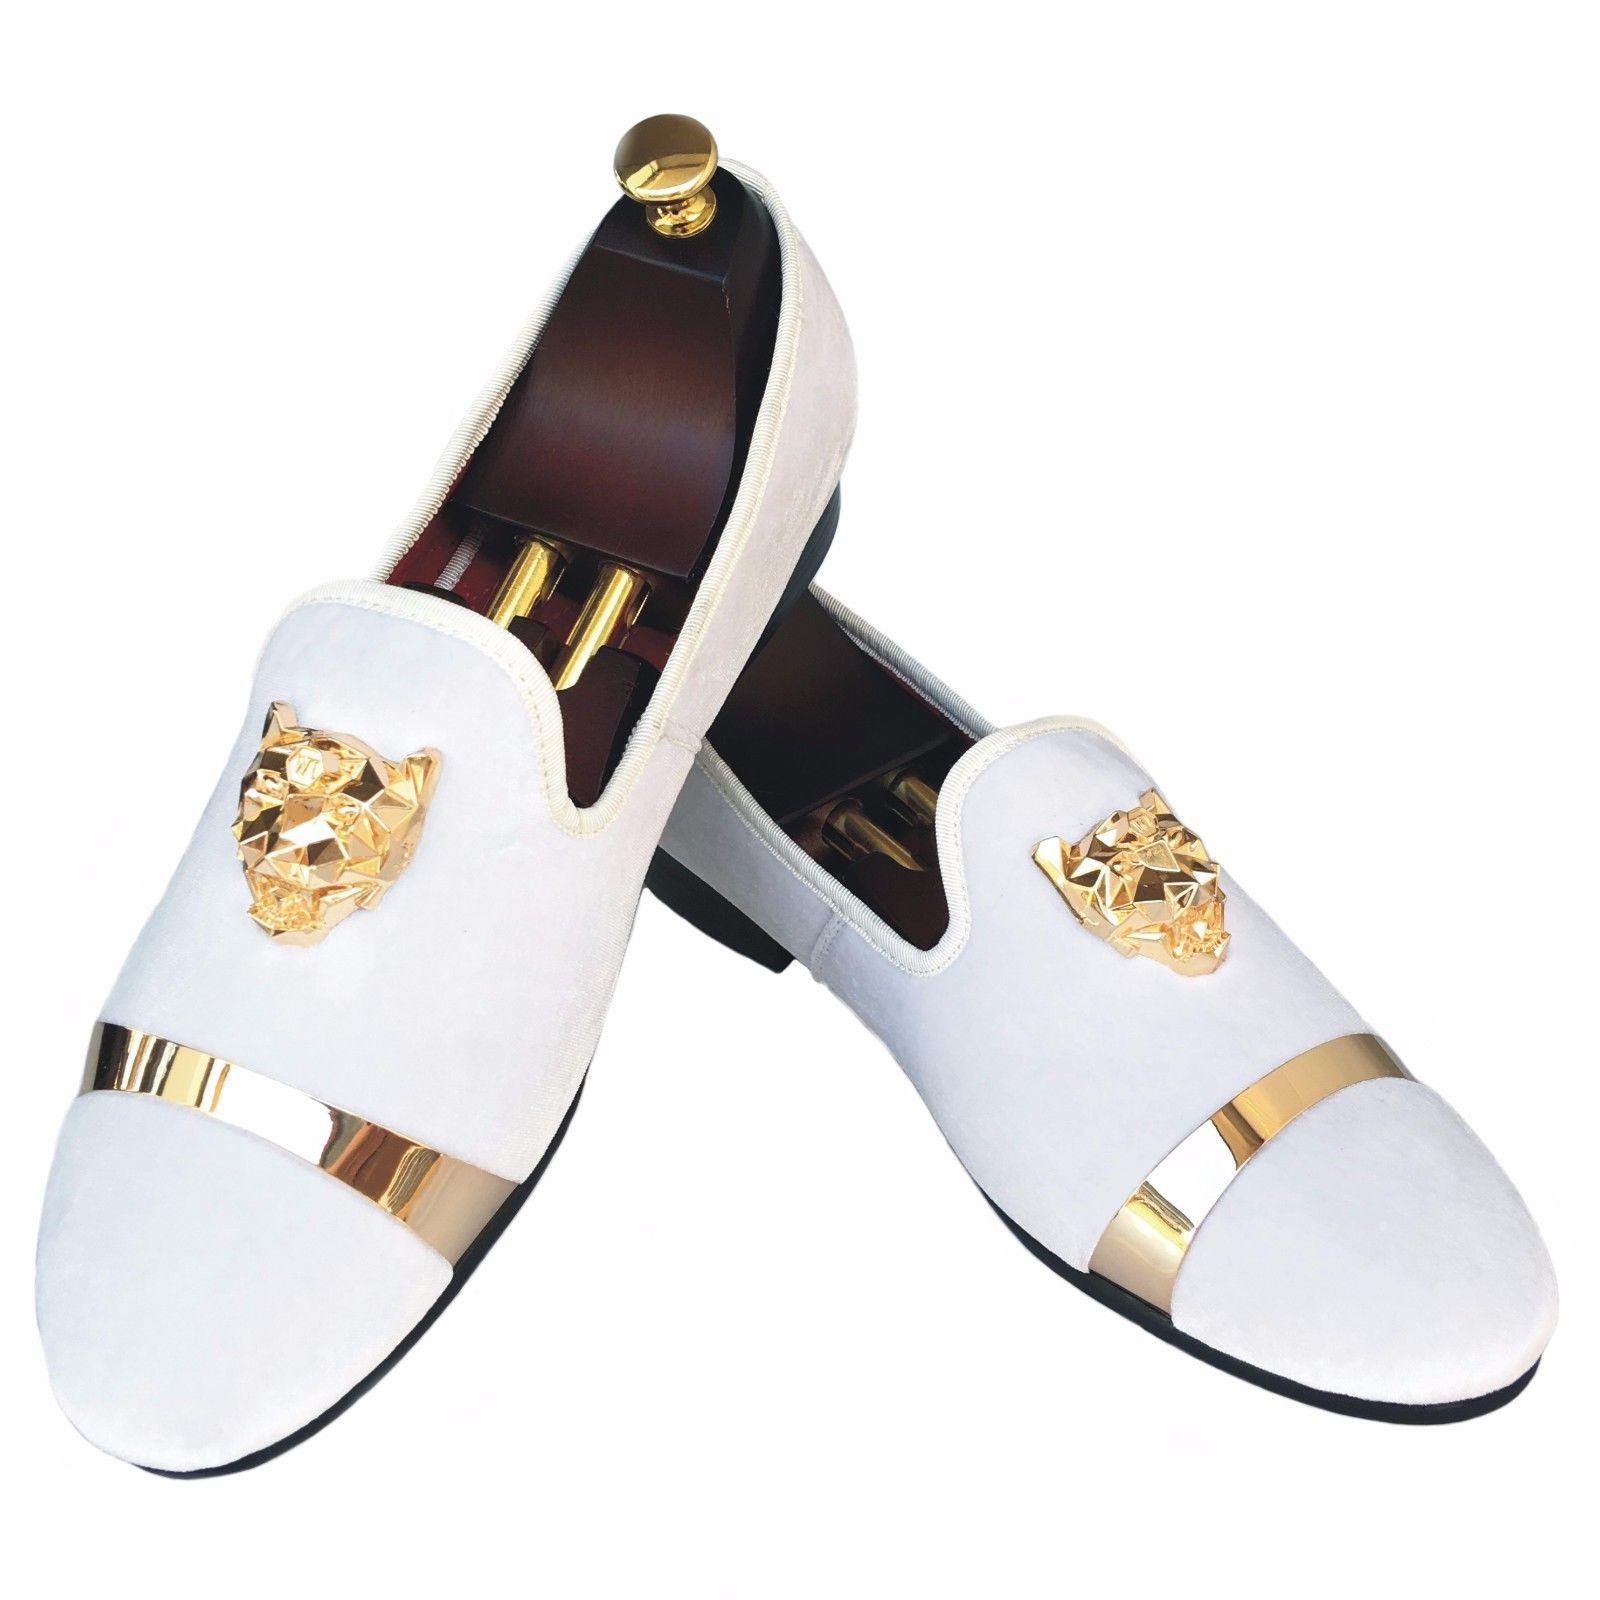 Handmade Mens Velvet Loafers Slippers with Gold Buckle Weddi